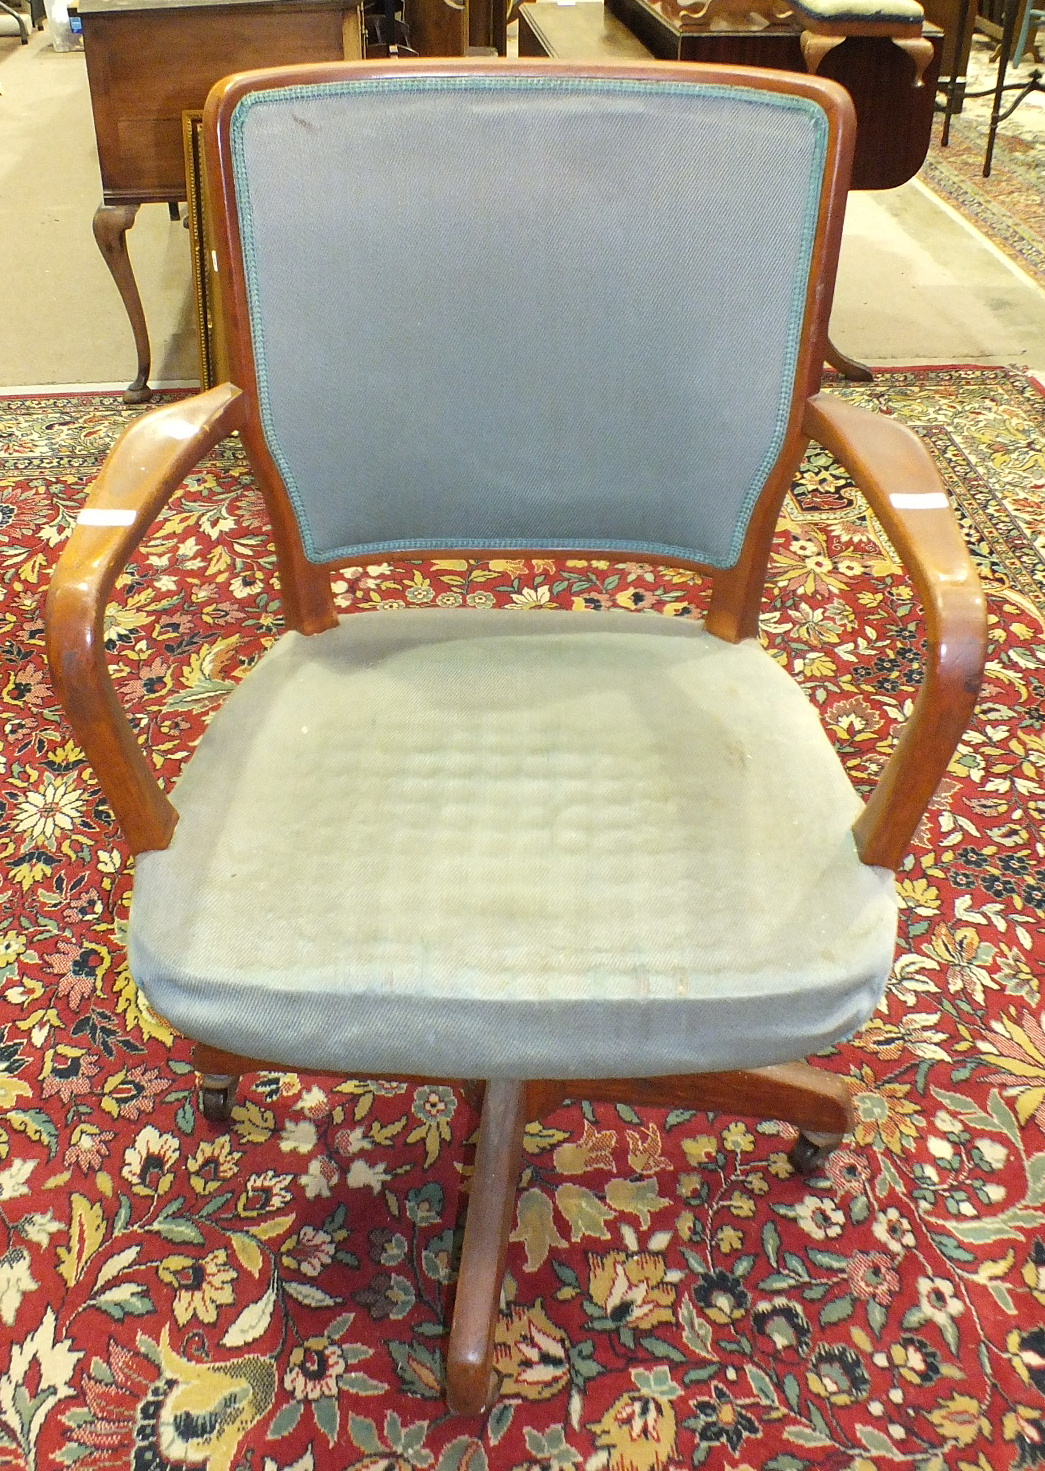 Lot 65 - A mid-20th century hardwood swivel office armchair with upholstered back and seat.